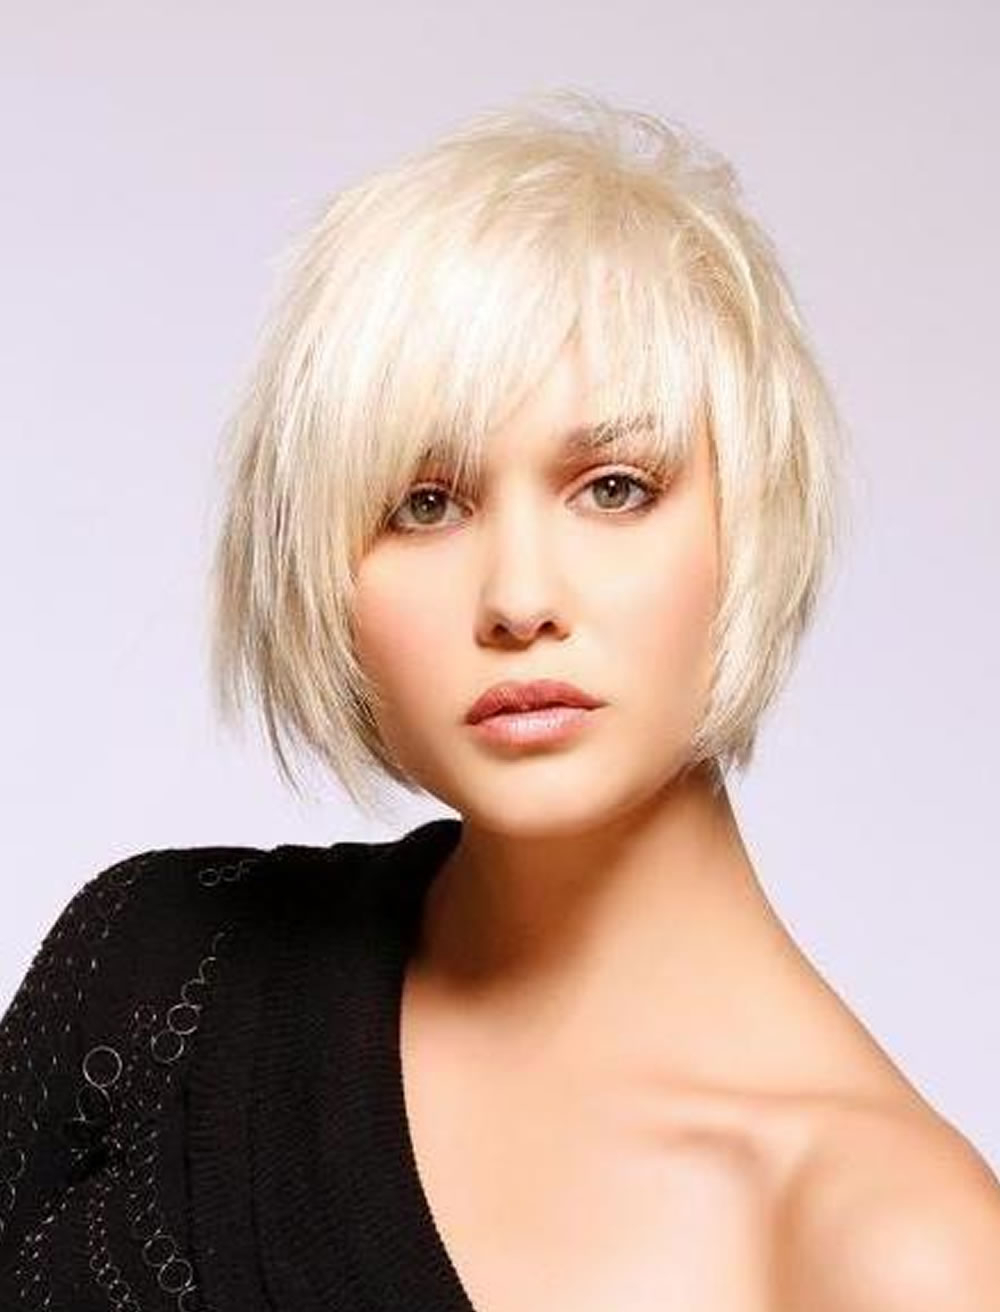 26 Long Short Bob Haircuts For Fine Hair 2017 2018 – Hairstyles Throughout Short Haircuts For Blondes With Thin Hair (View 14 of 25)